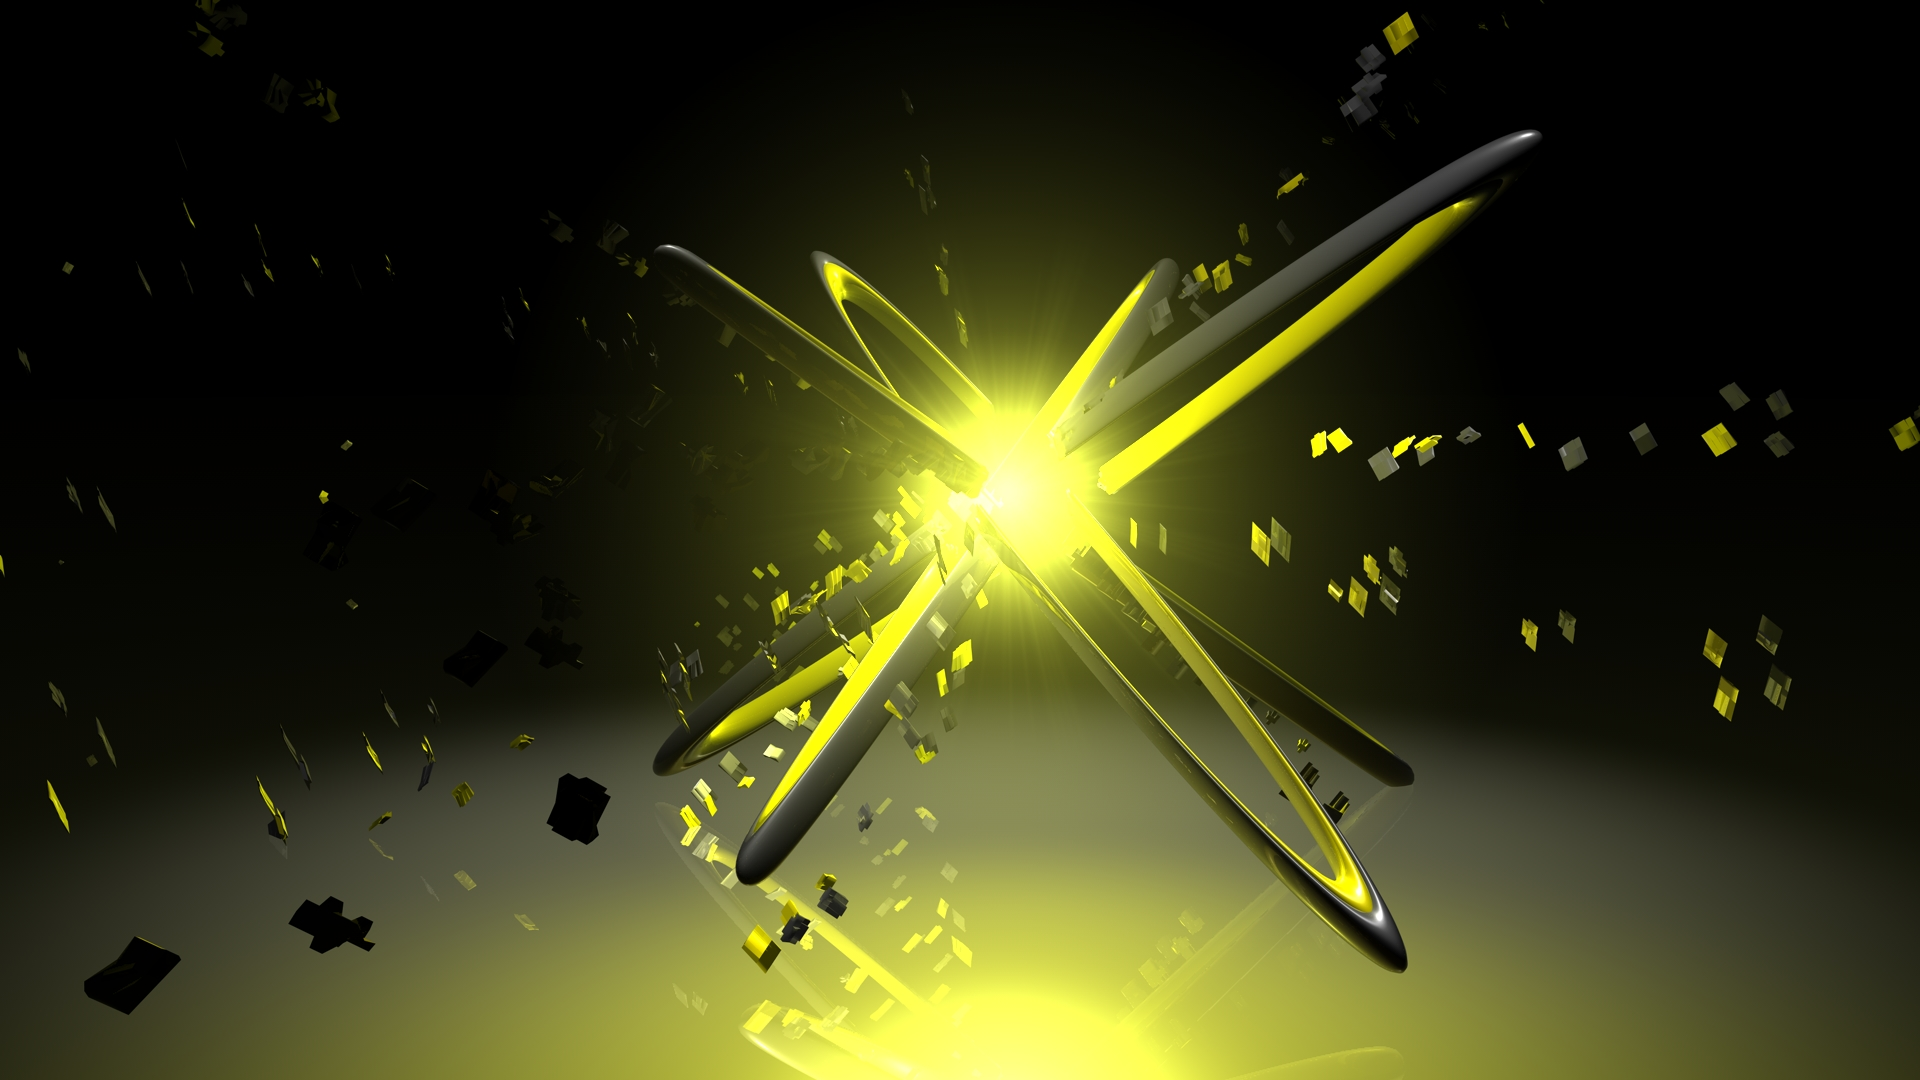 Hd Black And Yellow Wallpapers 30 Wide Wallpaper